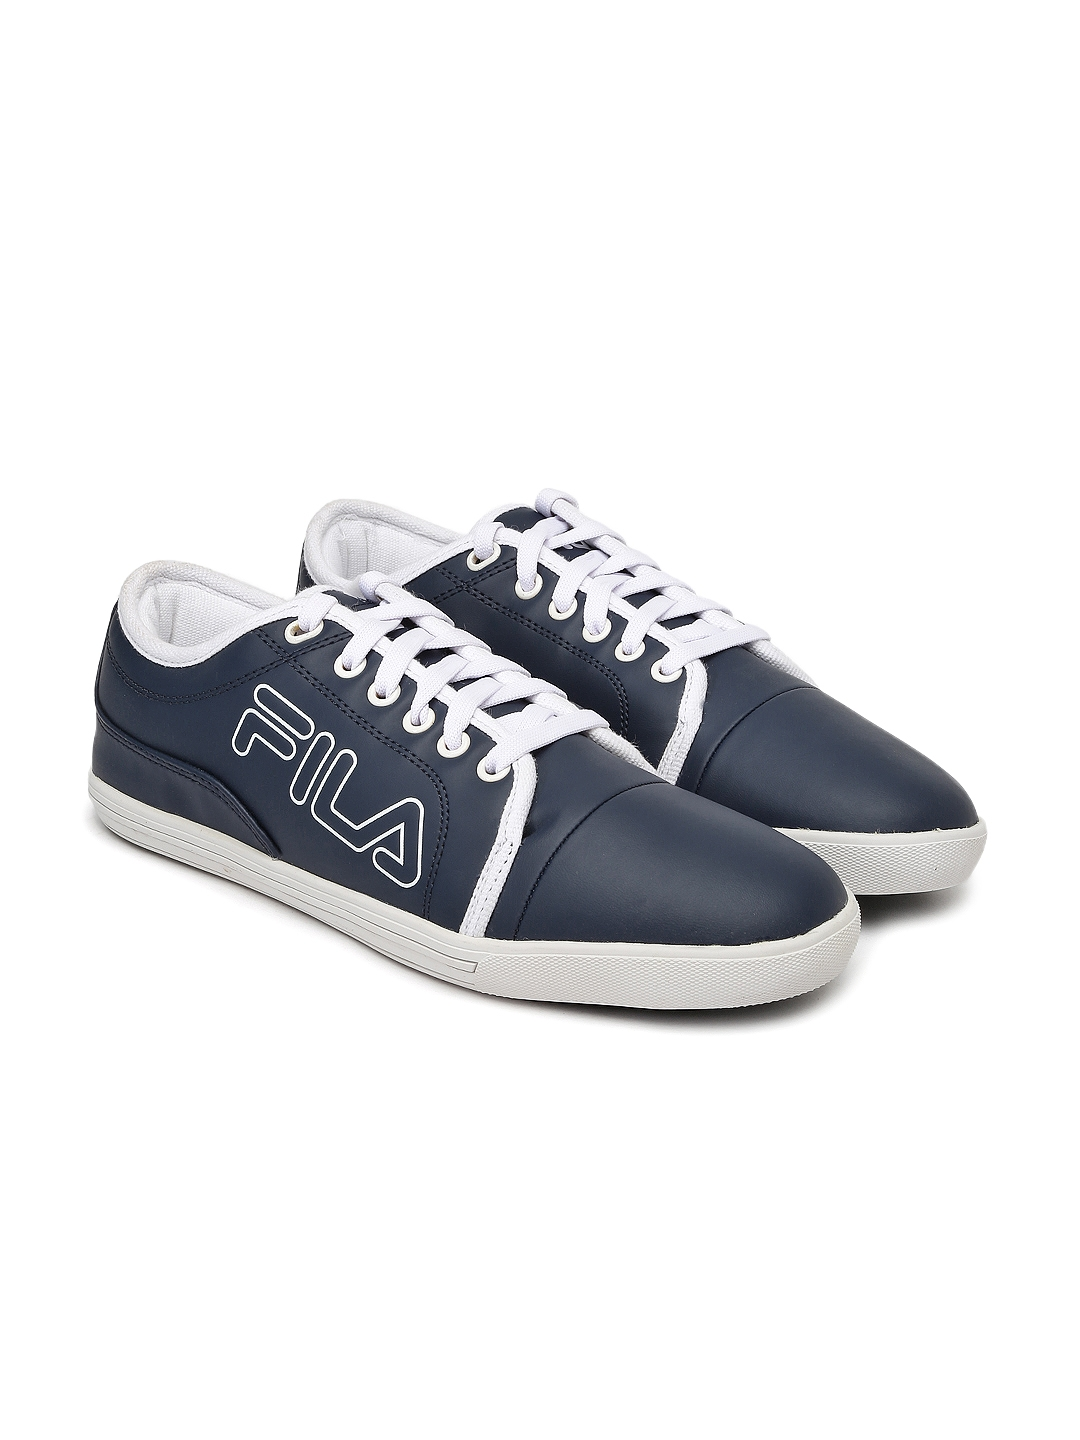 buy fila casual shoes online Sale,up to 75% DiscountsDiscounts